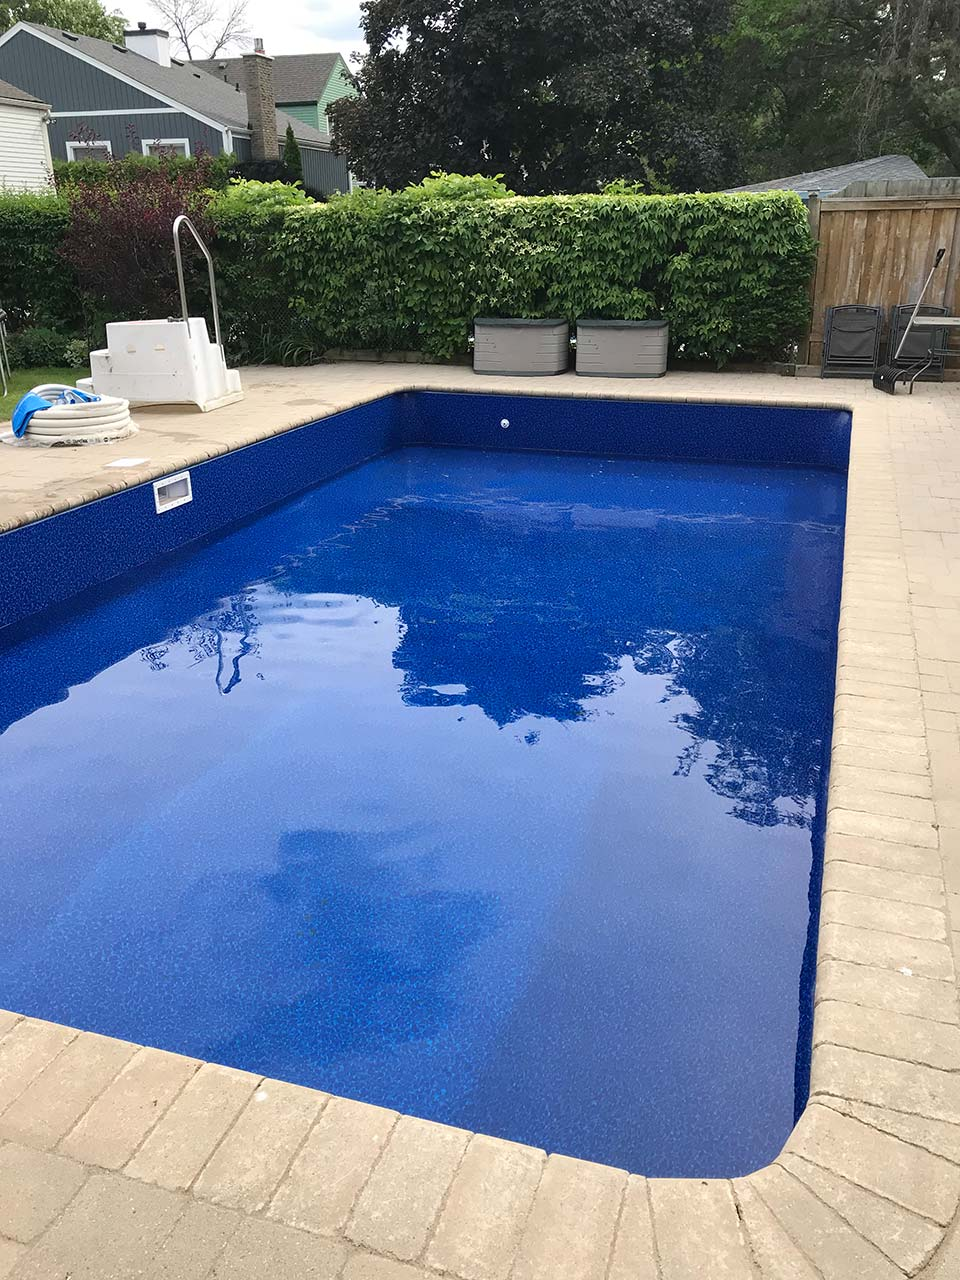 scoophvac pool services